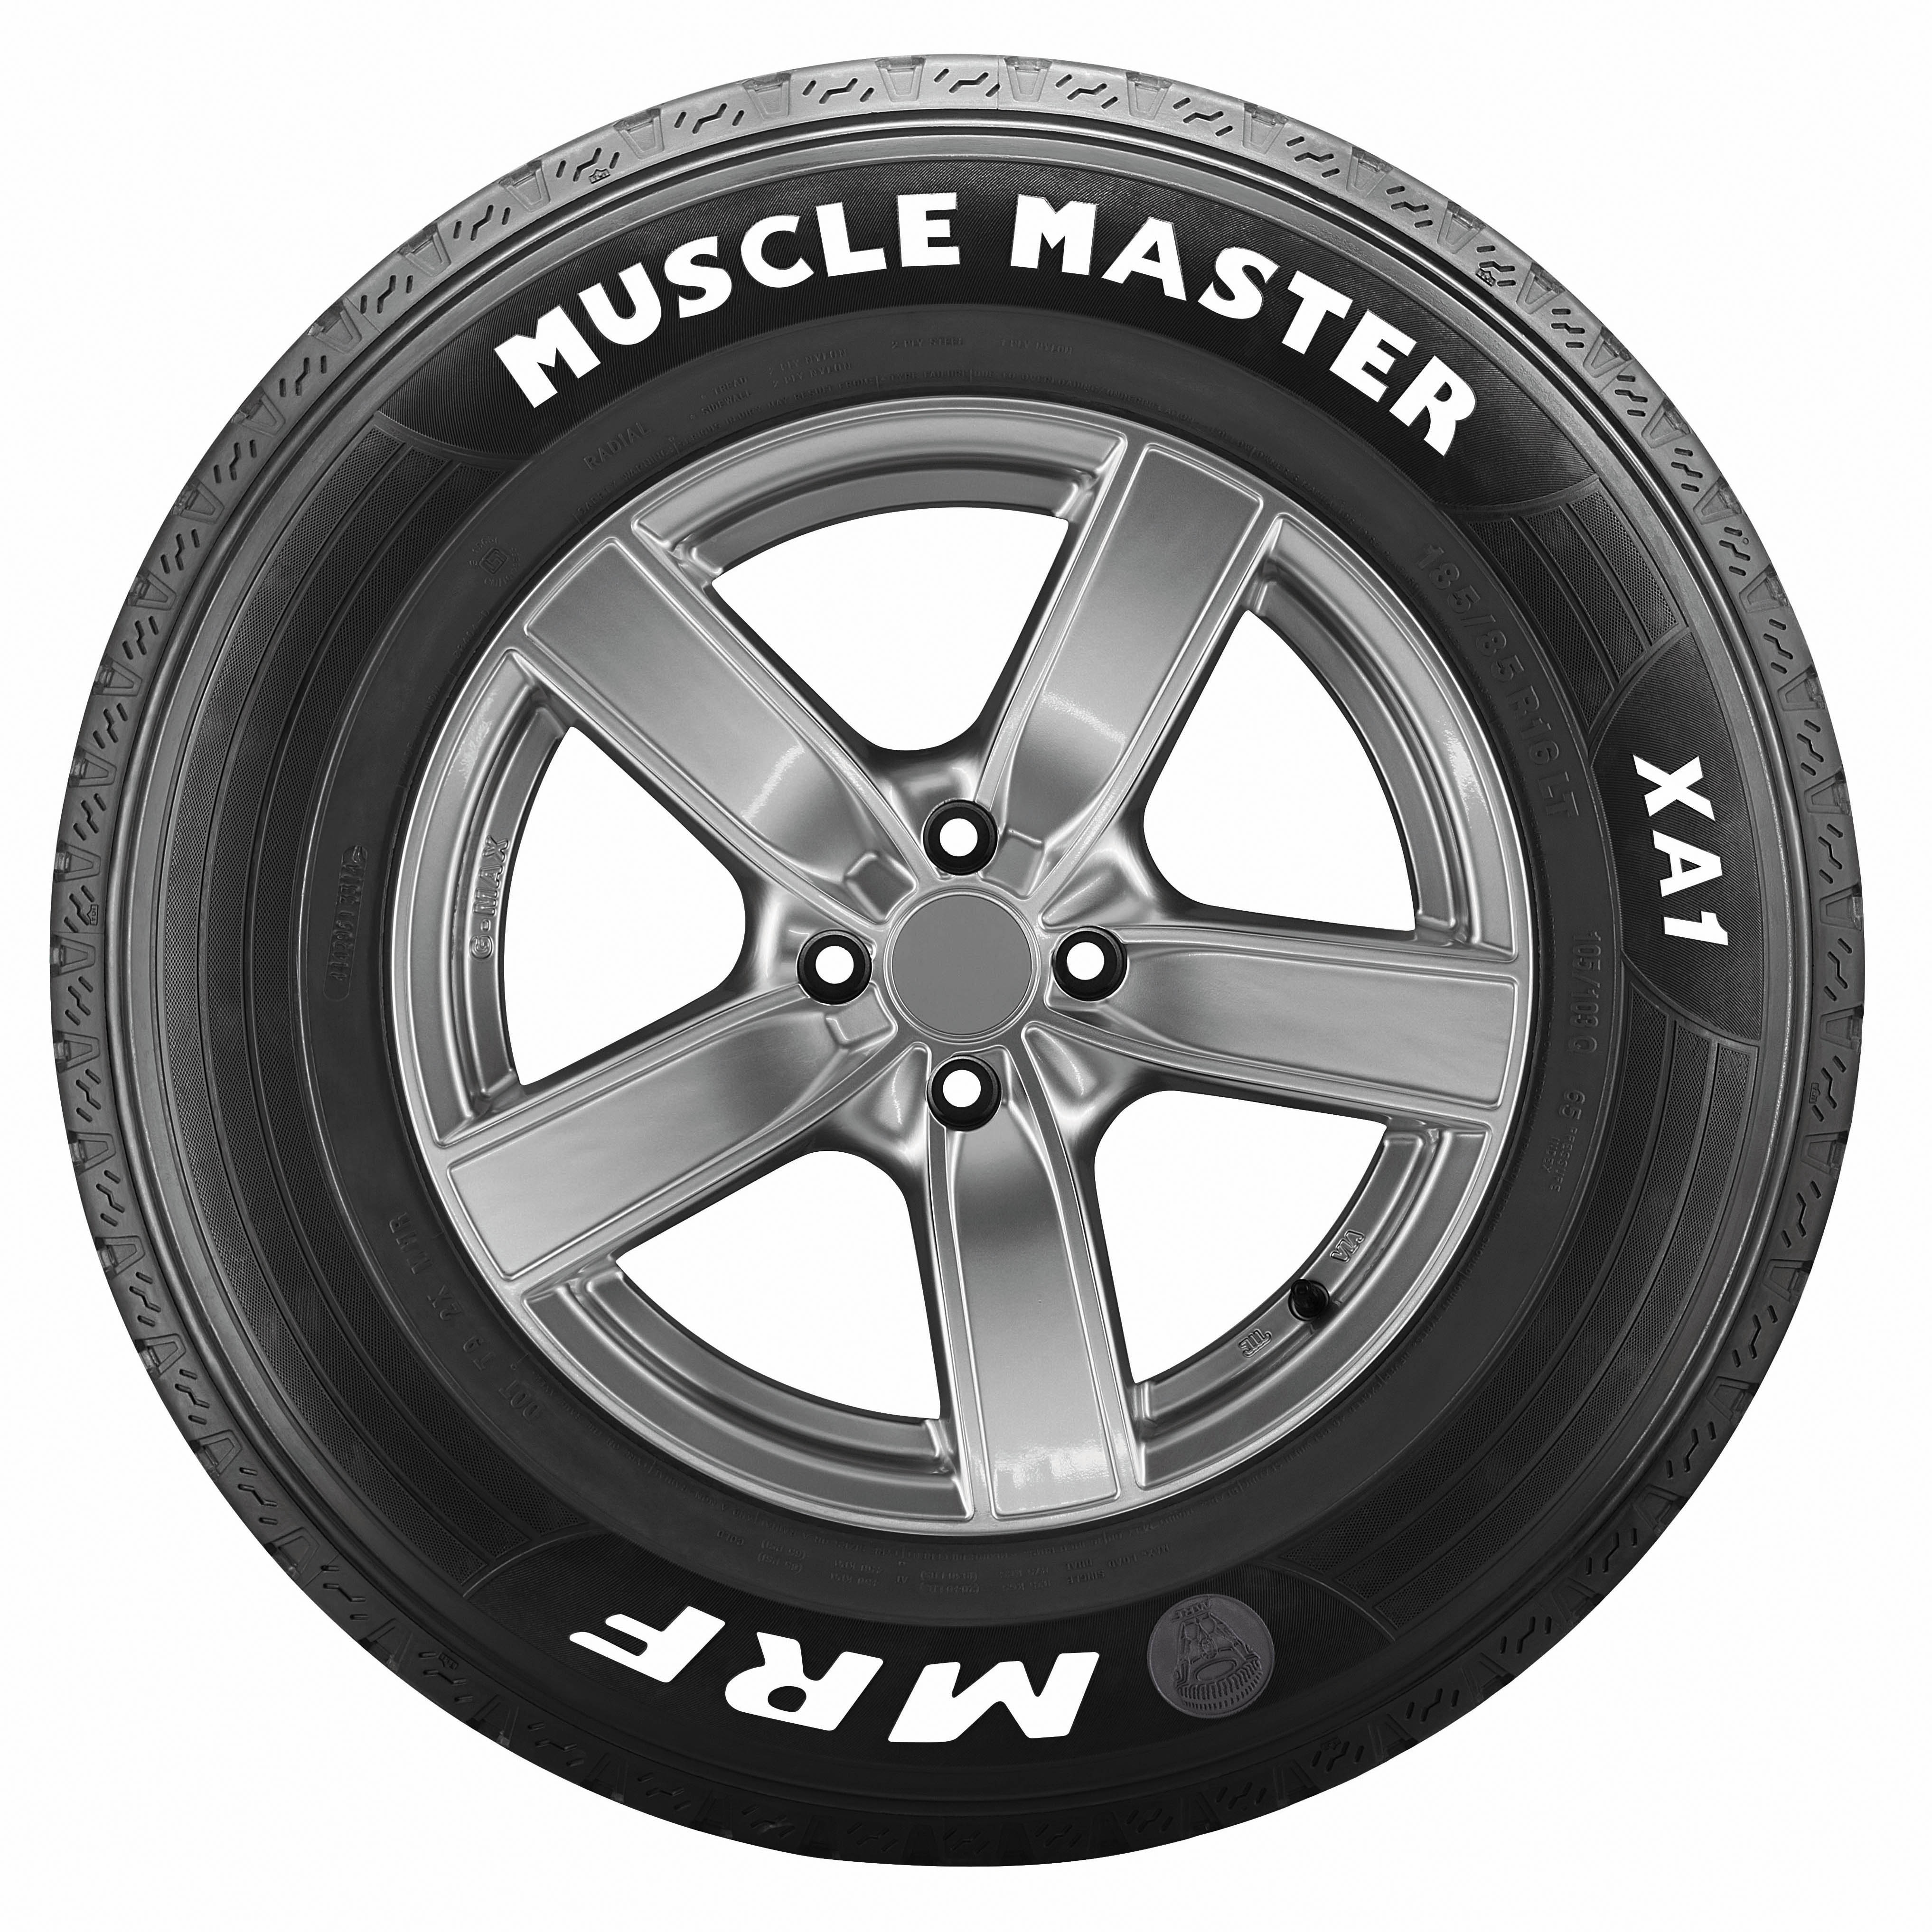 Mrf Tyres Muscle Master